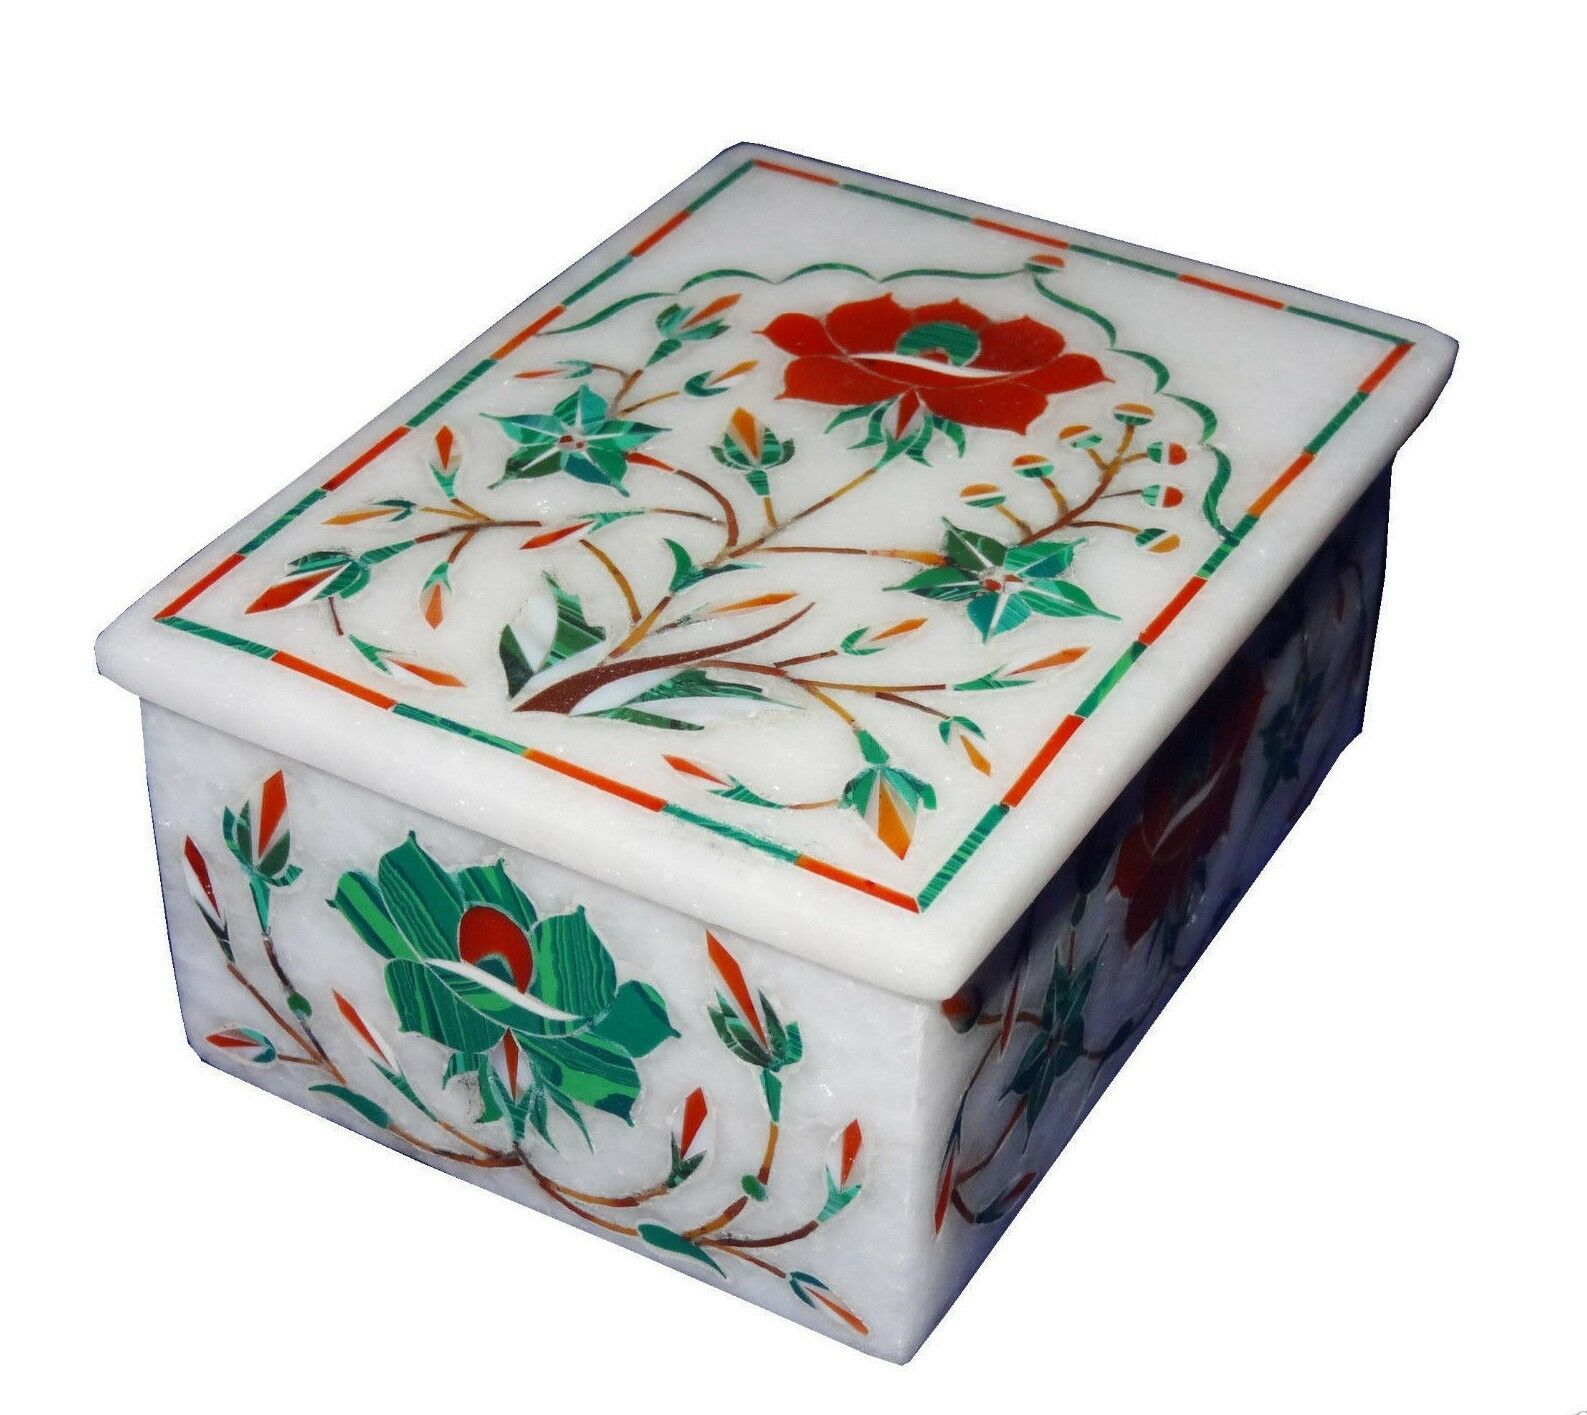 Marble ring Box Floral semi precious stones Inlay Work Home Decor and gifts